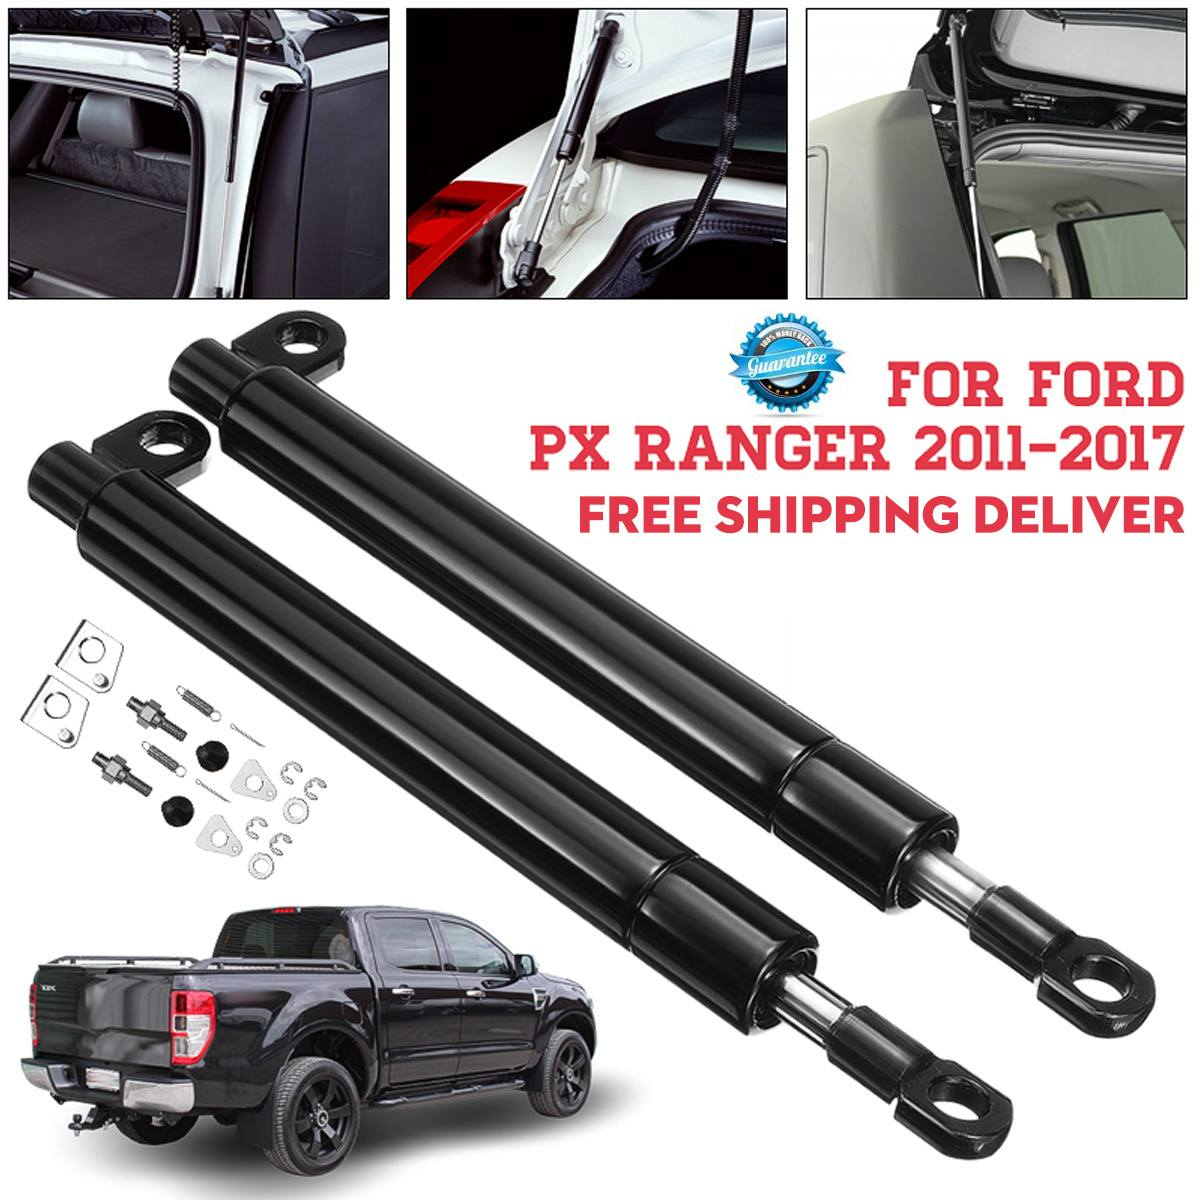 1 Pair Rear Tailgate Slow Down & Easy Up Strut Kit For Ford PX Ranger 2011-2017 Easy Install No Drilling Required Anti-breaking